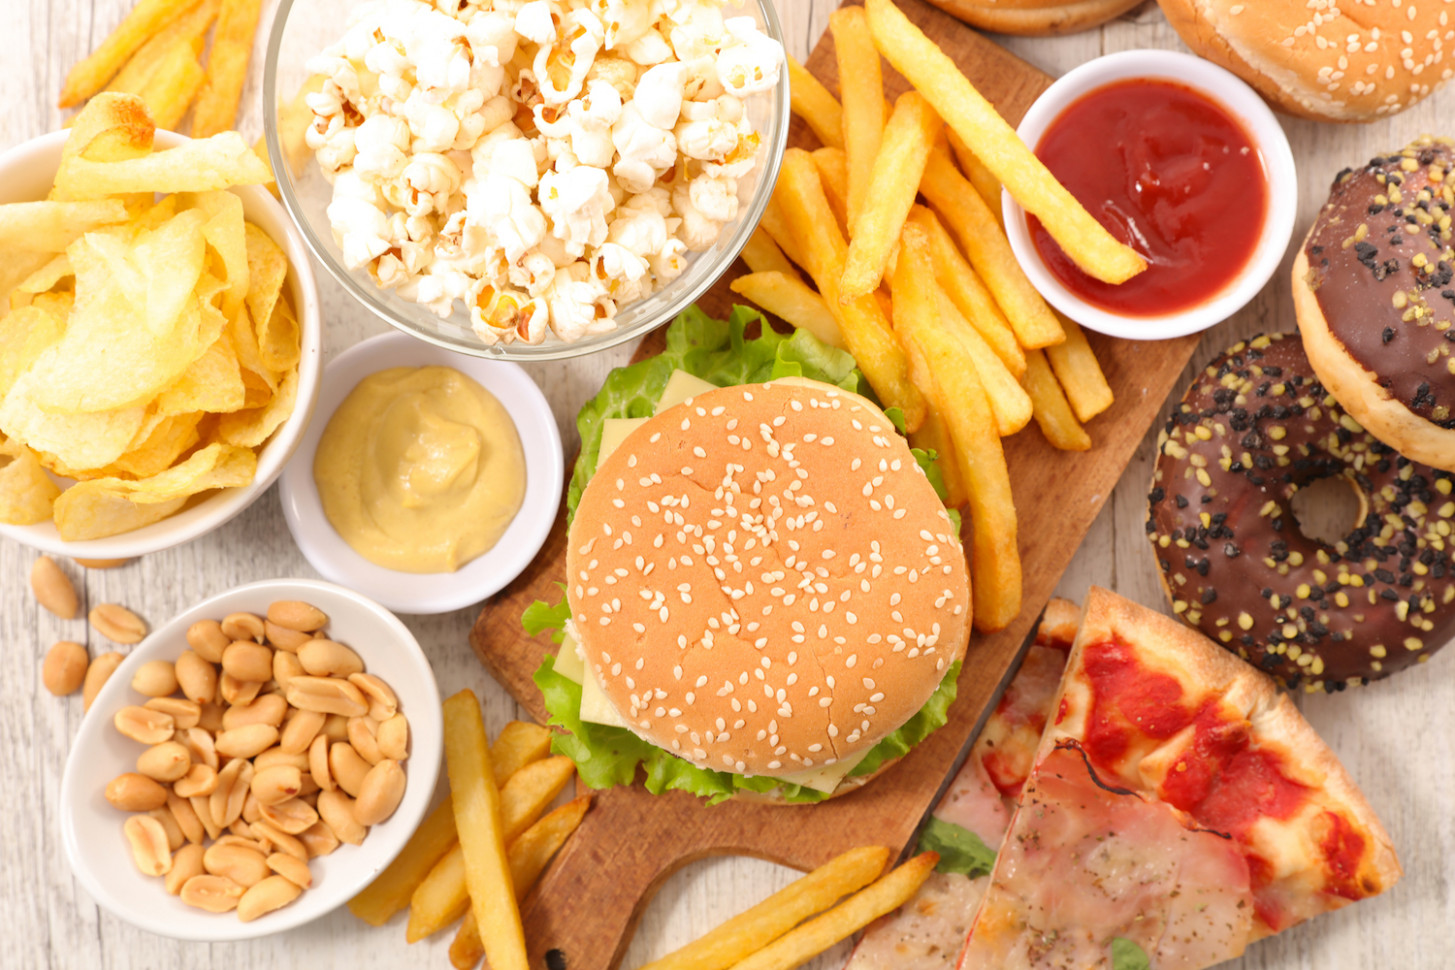 Qld Bans 'junk Food' Ads - Beef Central - Healthy Recipes Queensland Government